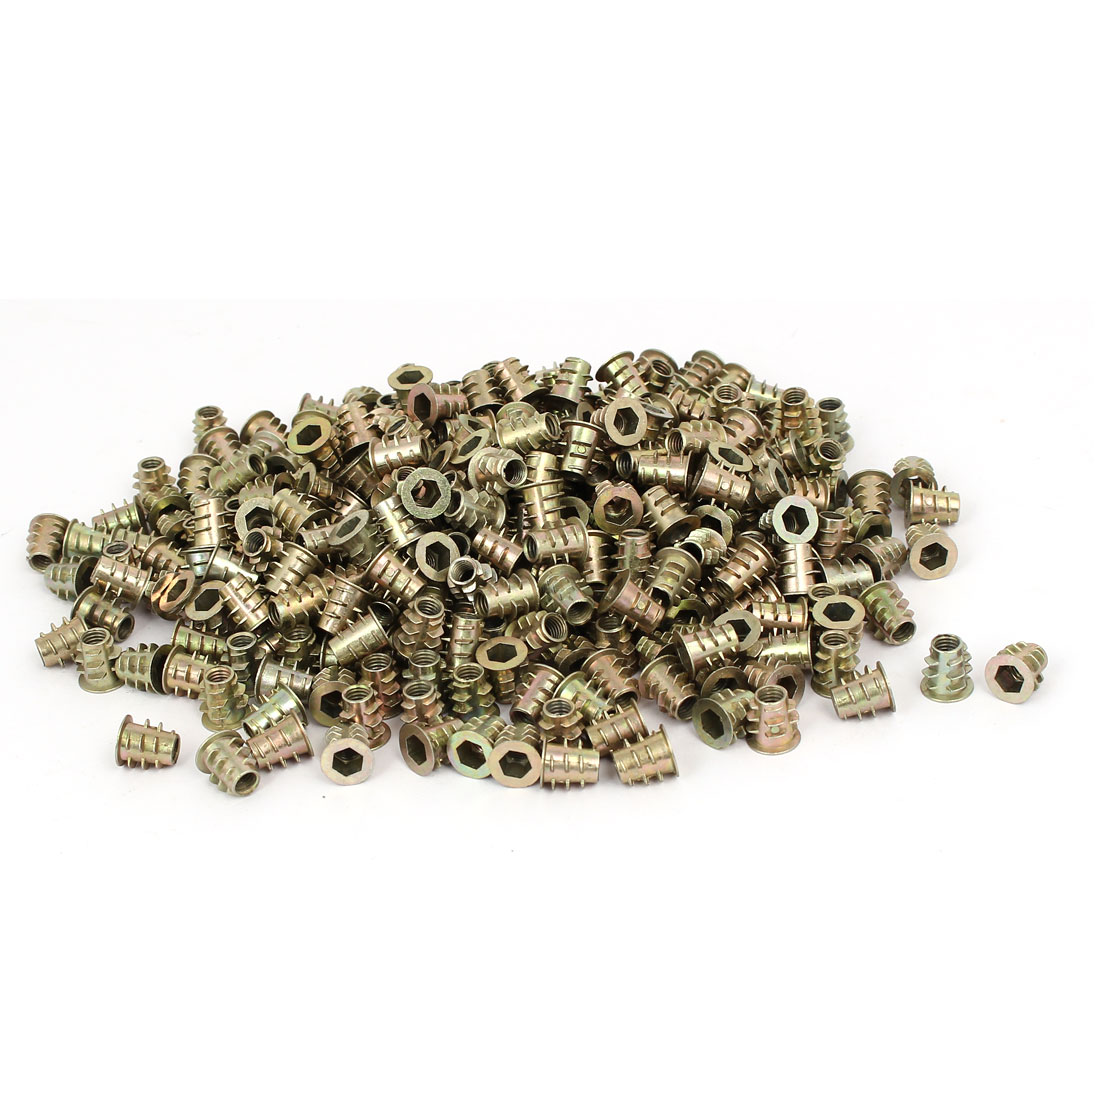 M5 x 10mm Hex Socket Head Insert Screws E-Nuts Furniture Fittings 500pcs